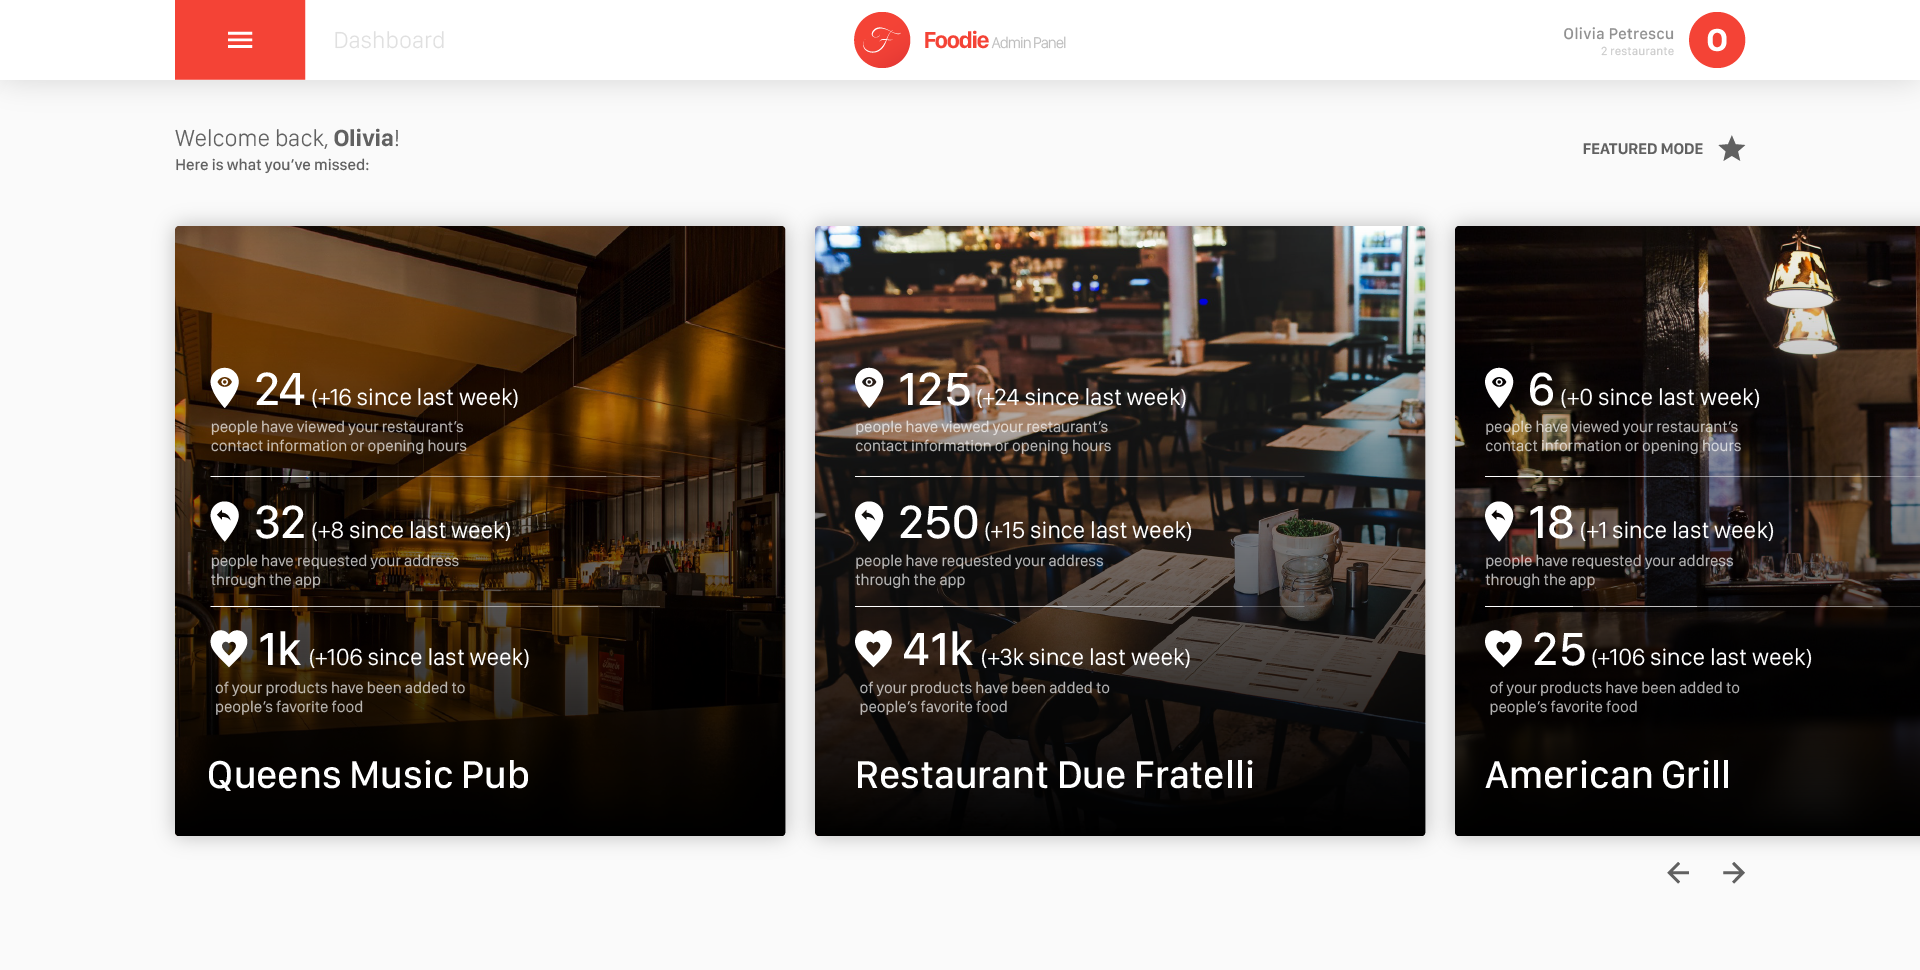 Dashboard - All Restaurants